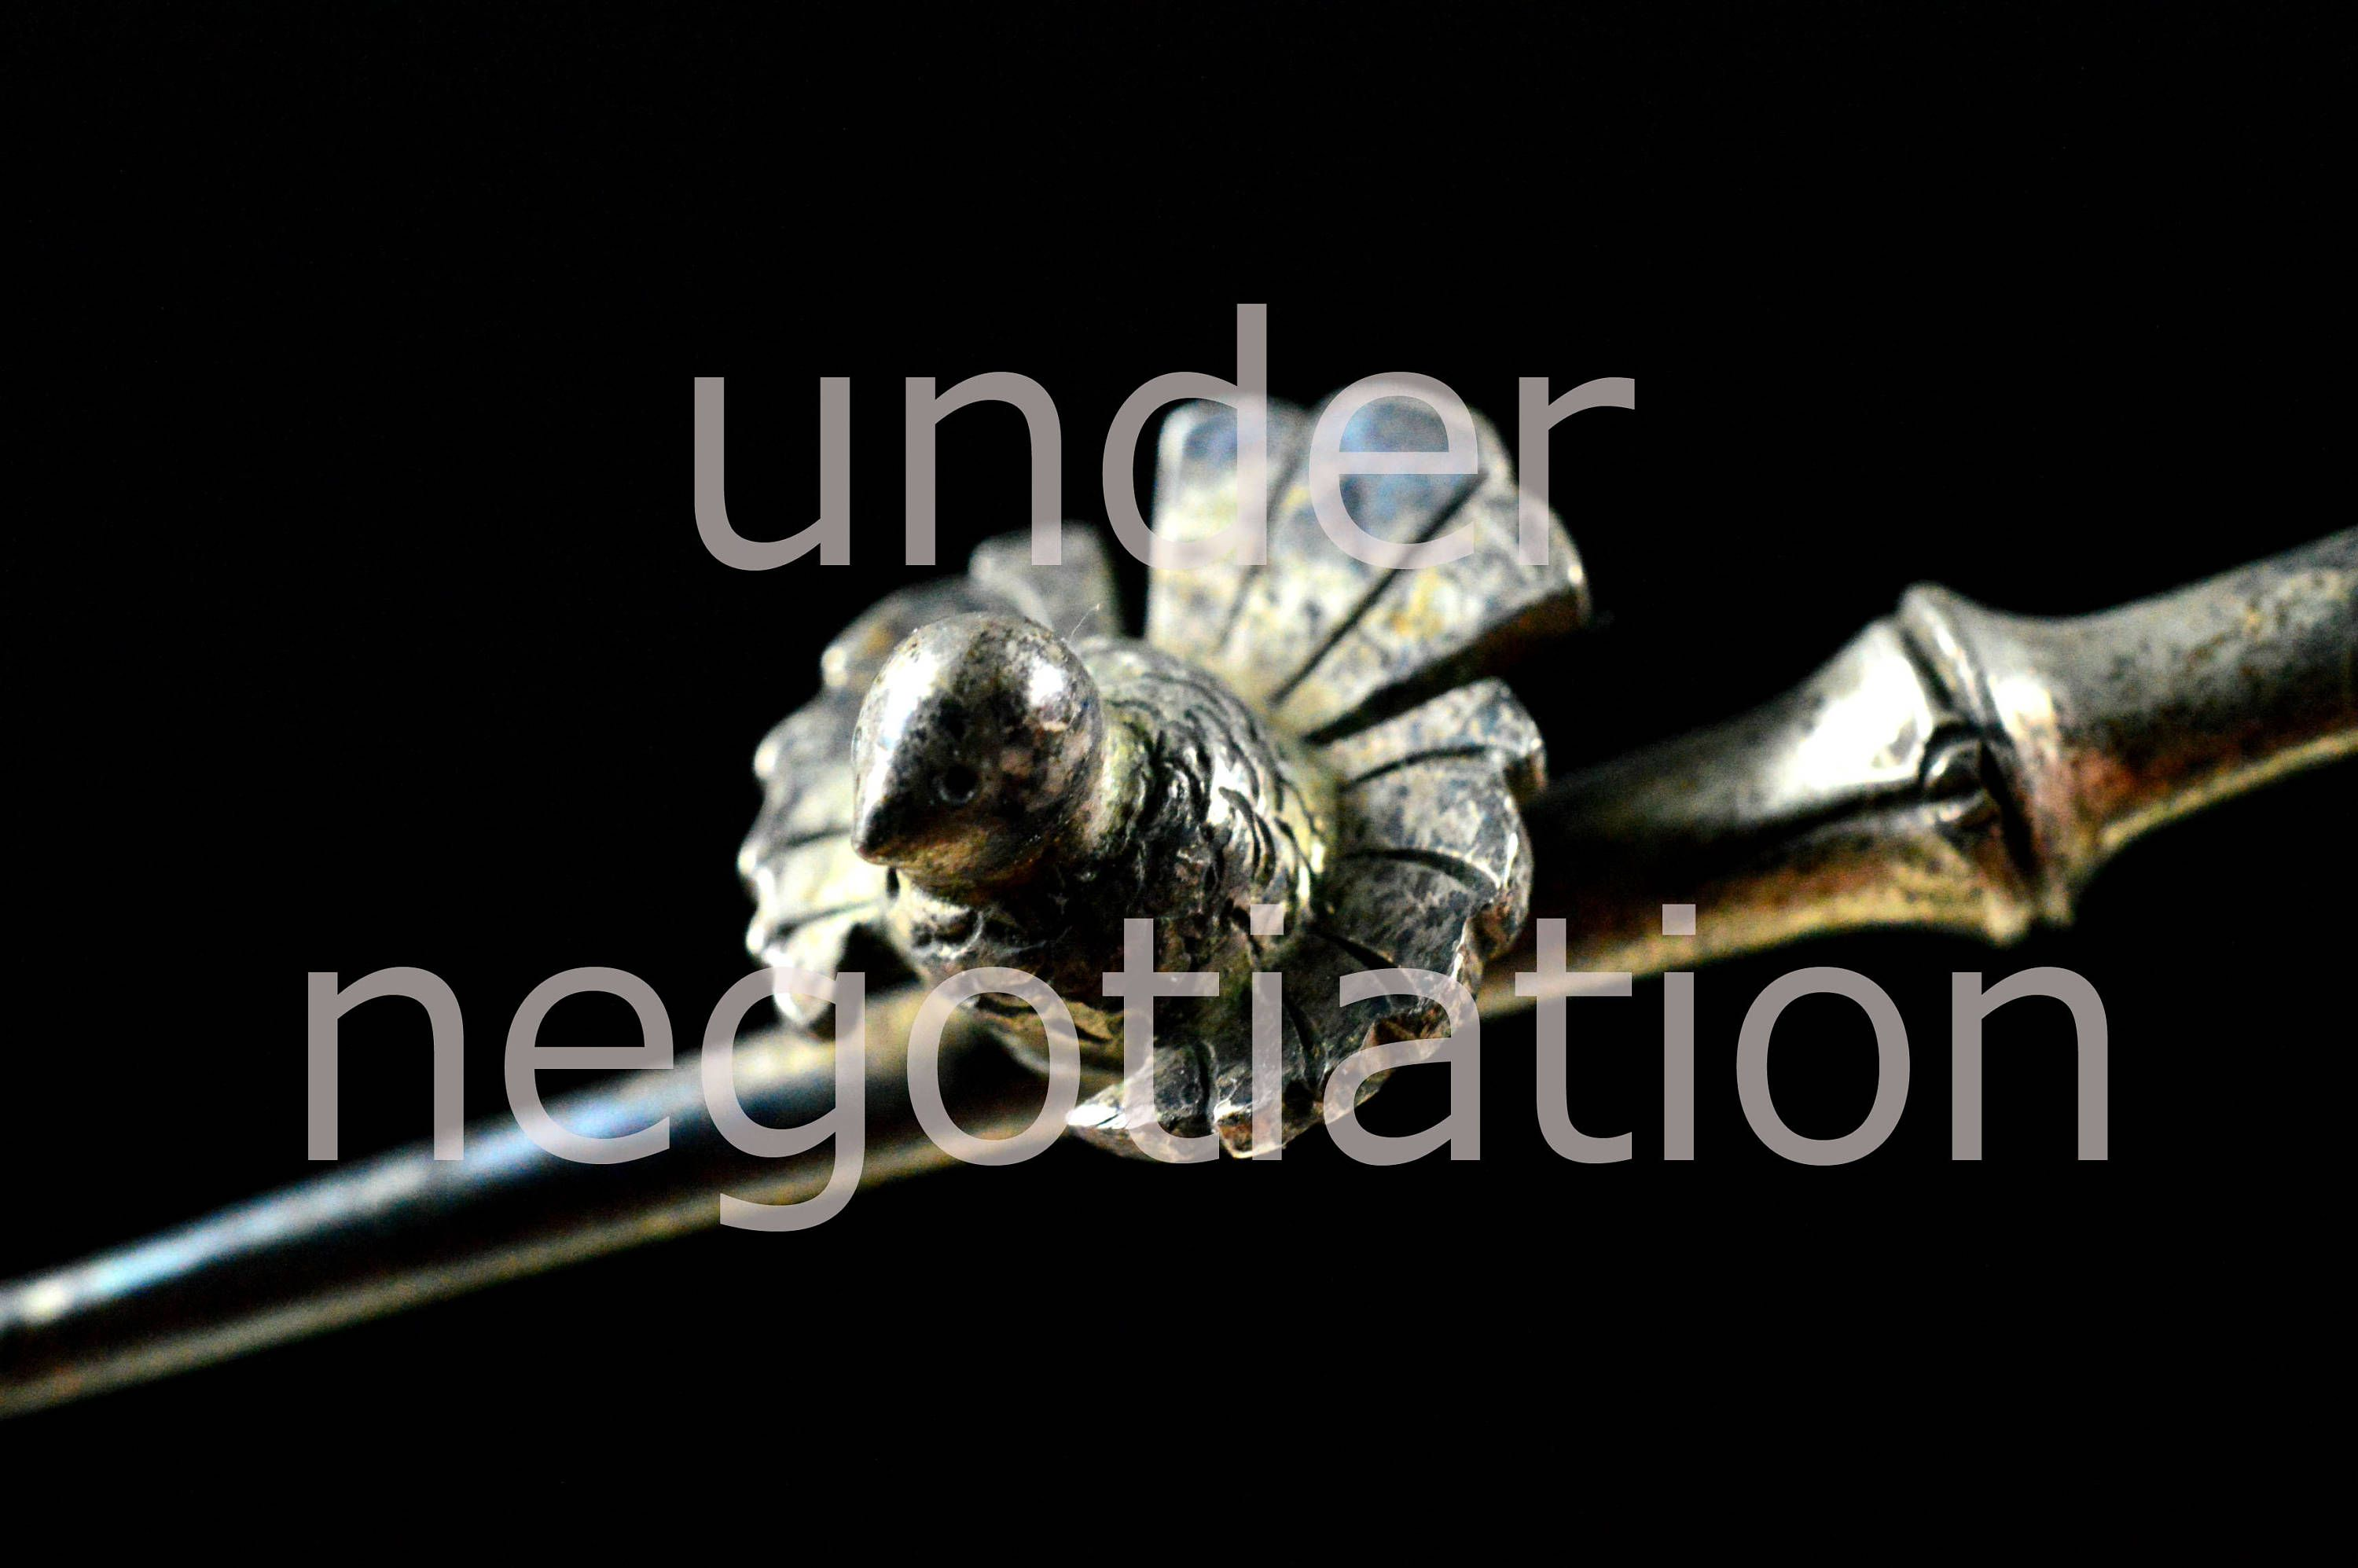 under negotiation under negotiation under negotiation under negotiation by JapaVintage on Etsy